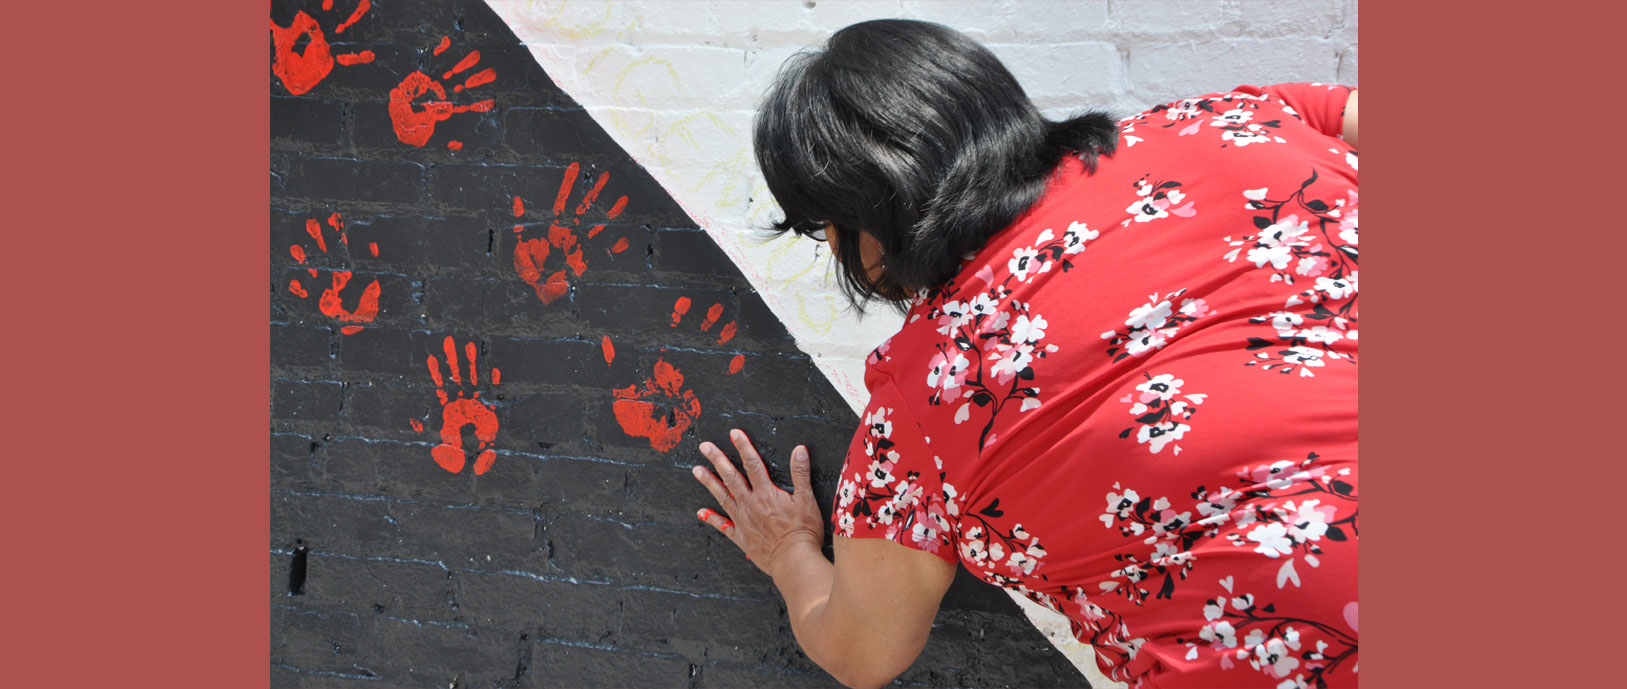 Picture of a female putting her hand print on a brick wall that has other handprints on it as well.